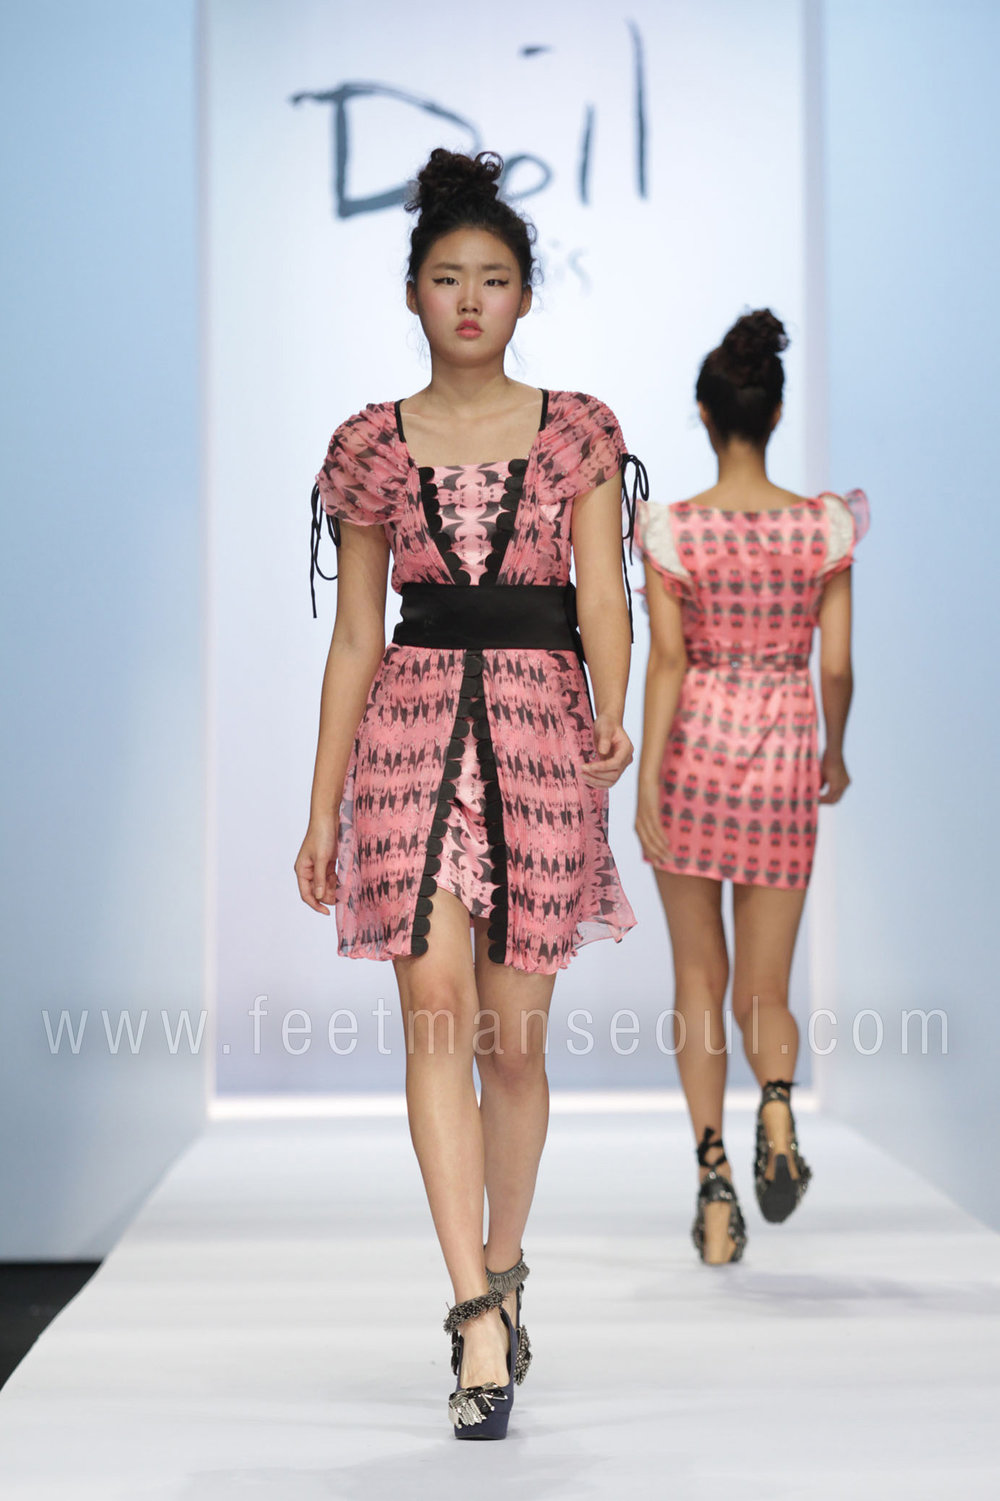 Doii Lee fashion show at Seoul Fashion Week SS2011 (Taken October, 2010)